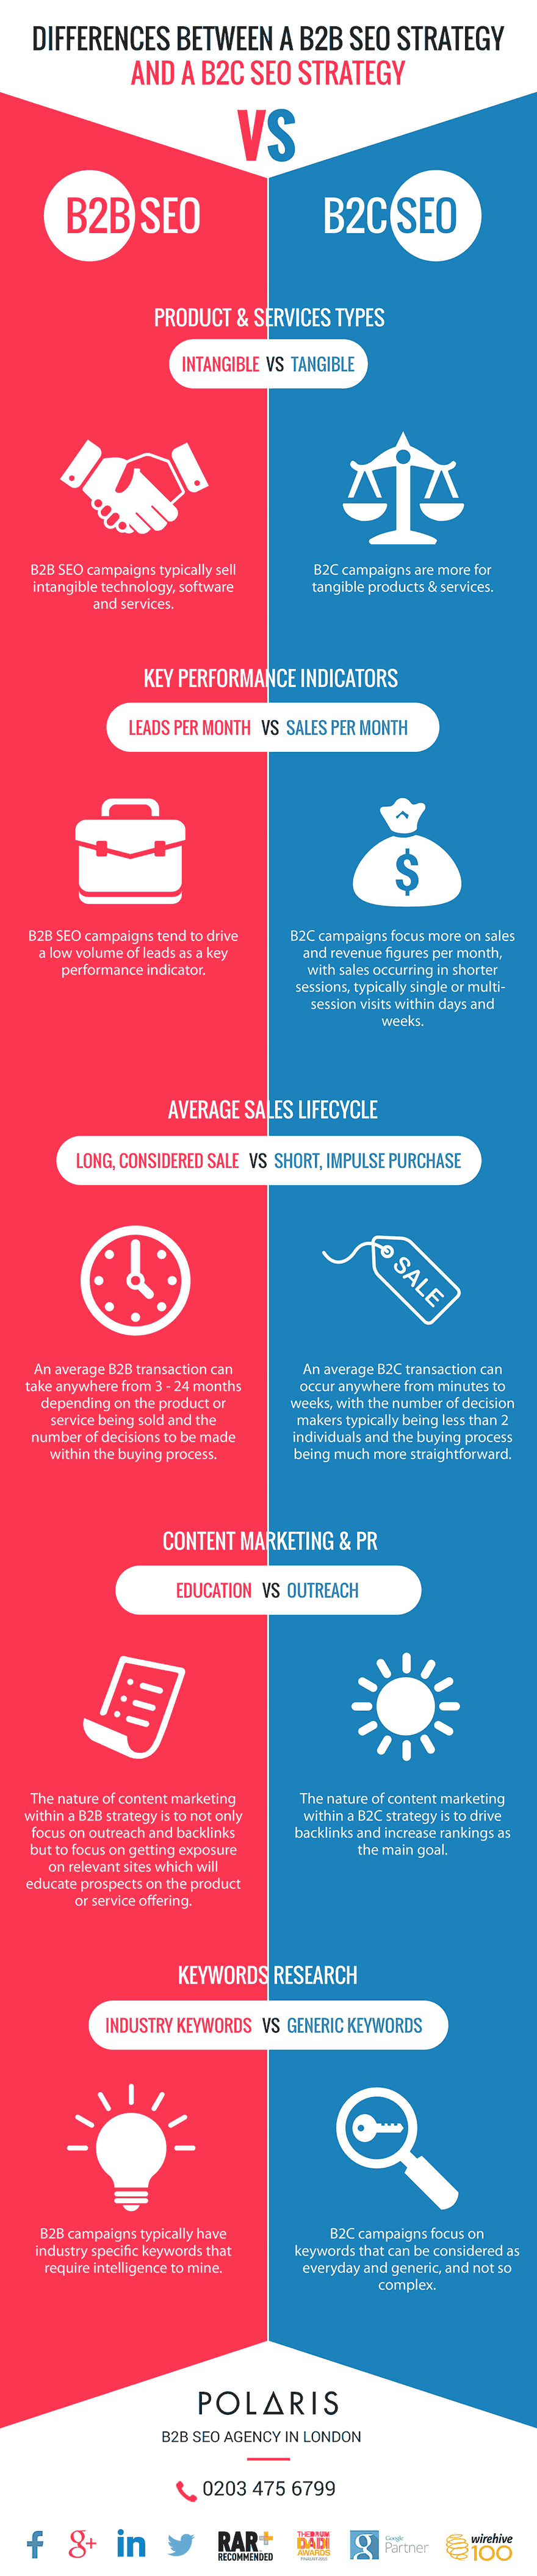 planning a marketing campaign the difference between b2b and b2c marketing See how b2c and b2b use marketing automation differently campaign monitor shows how both improve efficiency differently from email marketing automation.